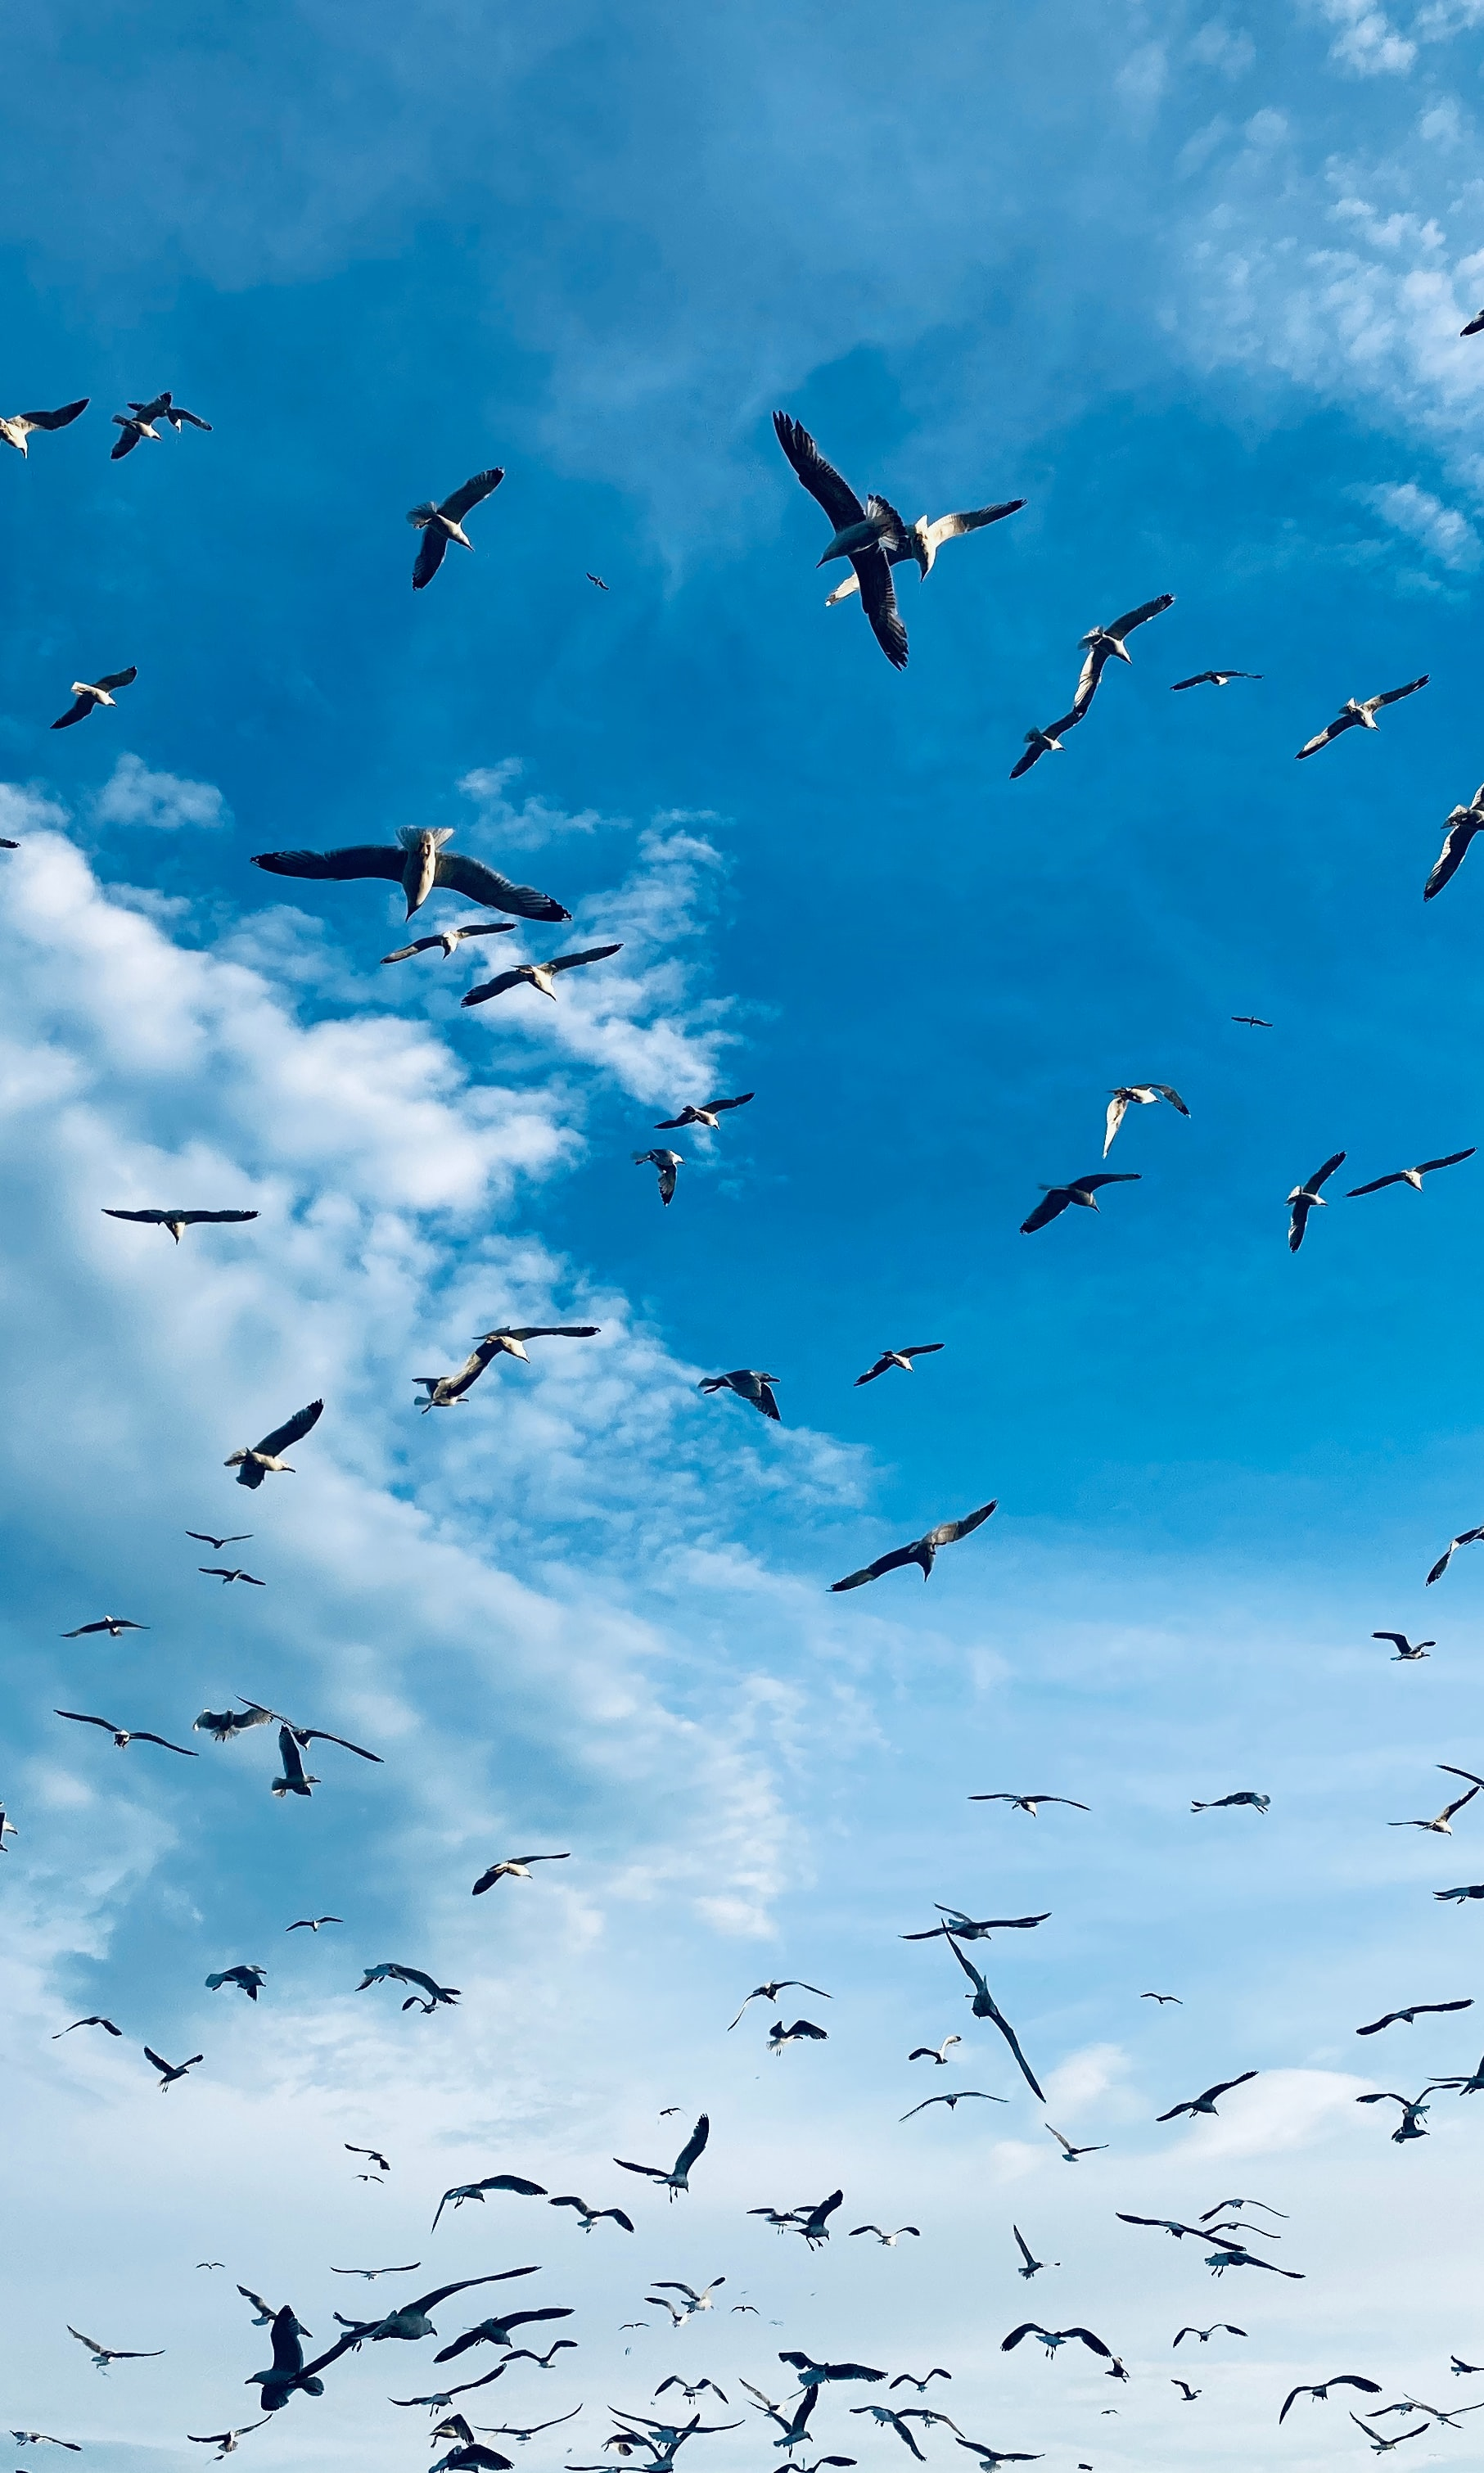 129644 download wallpaper Animals, Wings, Flock, Birds, Seagulls screensavers and pictures for free